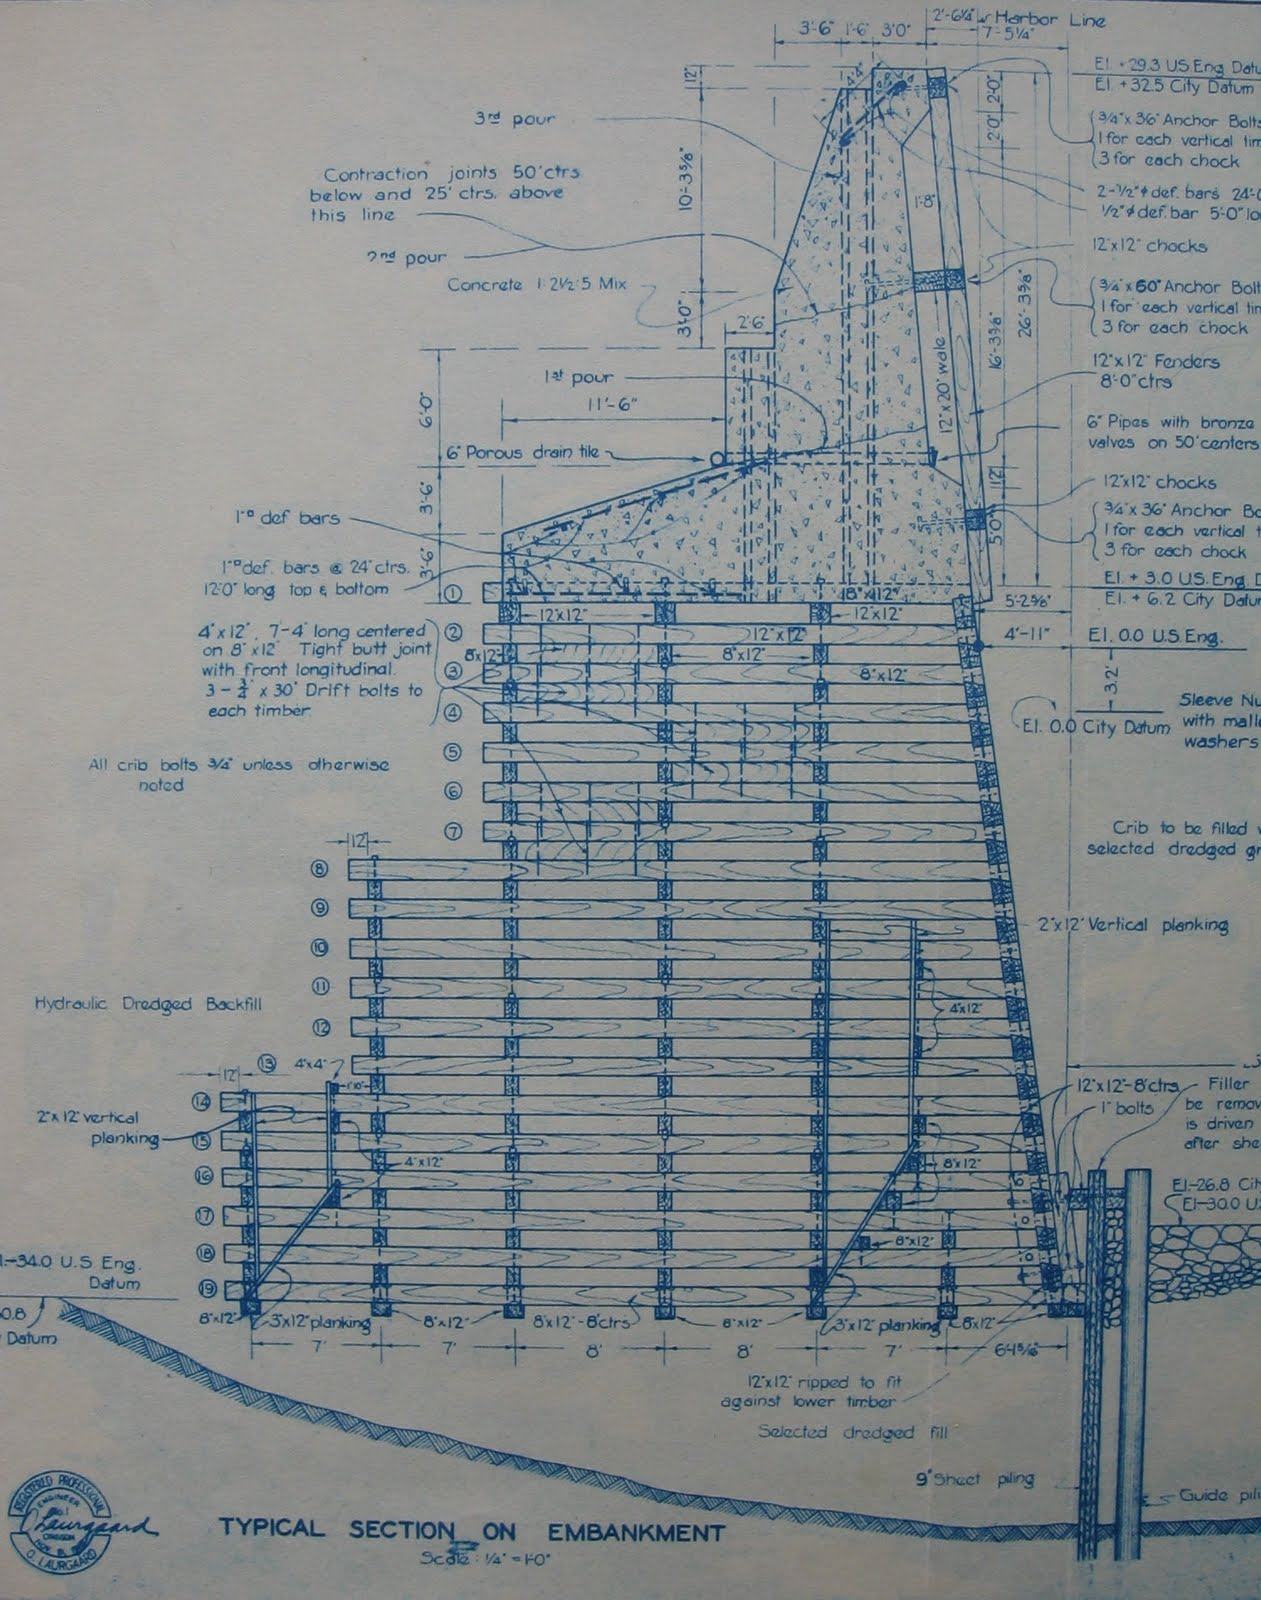 Historical Threads Construction Of Portland Harbor Wall 1927 1929 Schematic Engineering Diagram Willamette River Would Be To The Right Structure